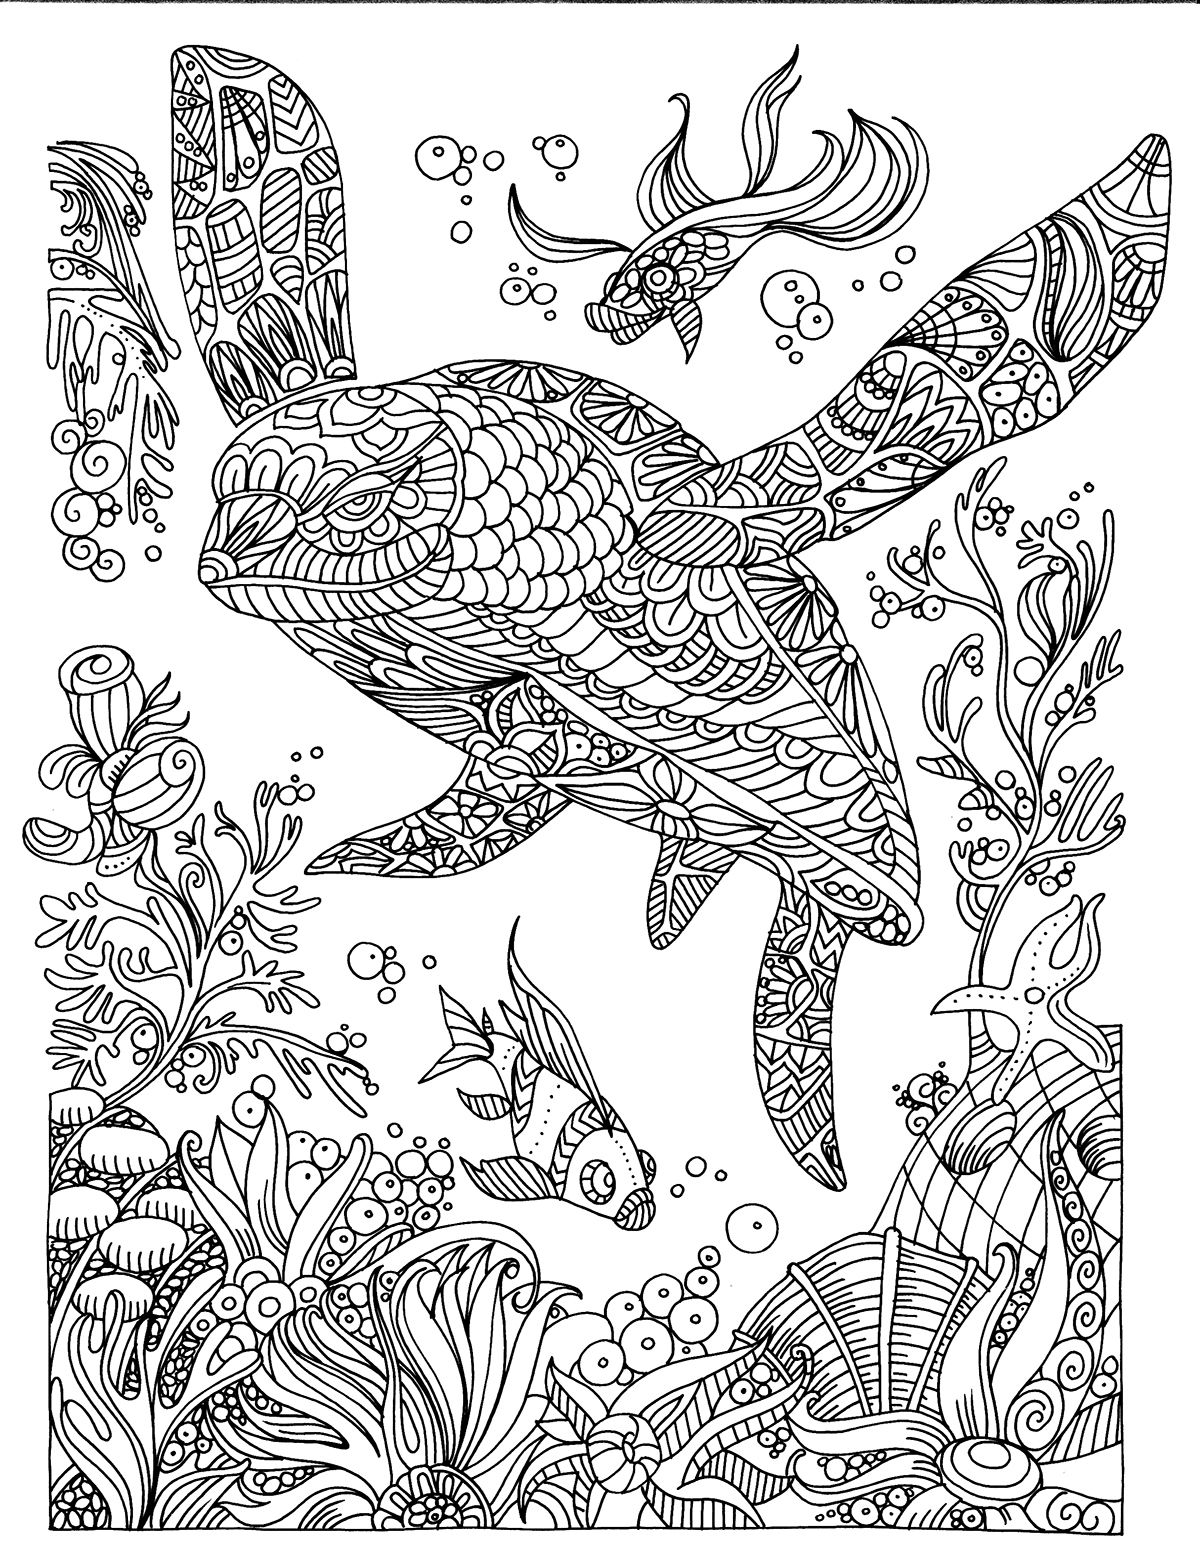 relaxation animal coloring pages turtle illustration colouring page mandalas zentangle coloring pages animal relaxation